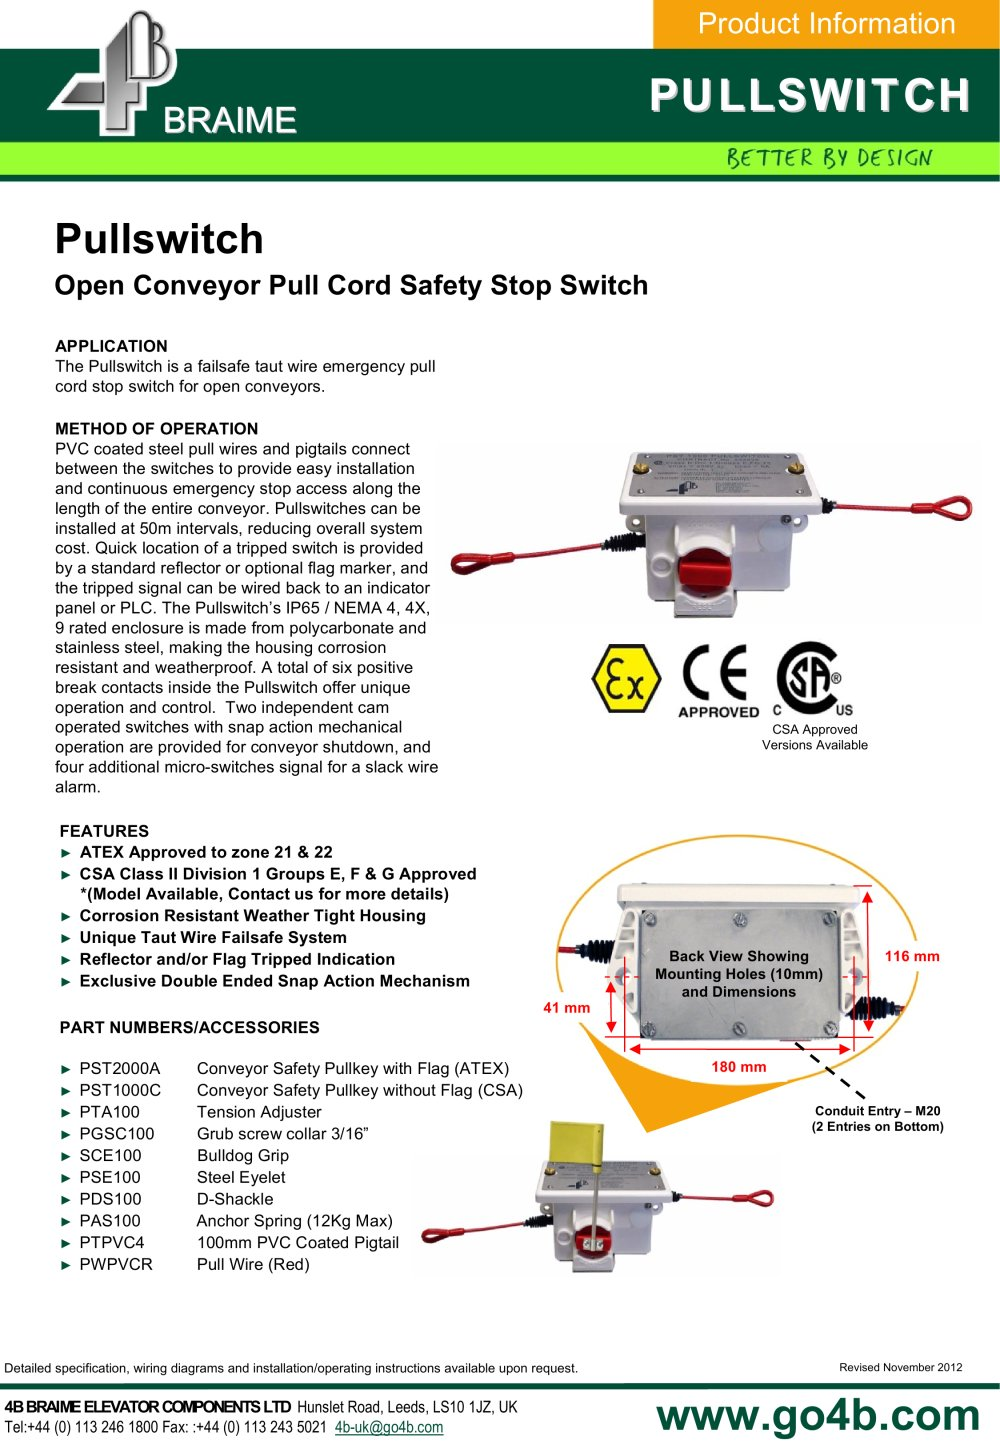 4b pullswitch conveyor safety stop switch 11170_1b 4b pullswitch conveyor safety stop switch 4b braime components conveyor pull cord switch wiring diagram at panicattacktreatment.co